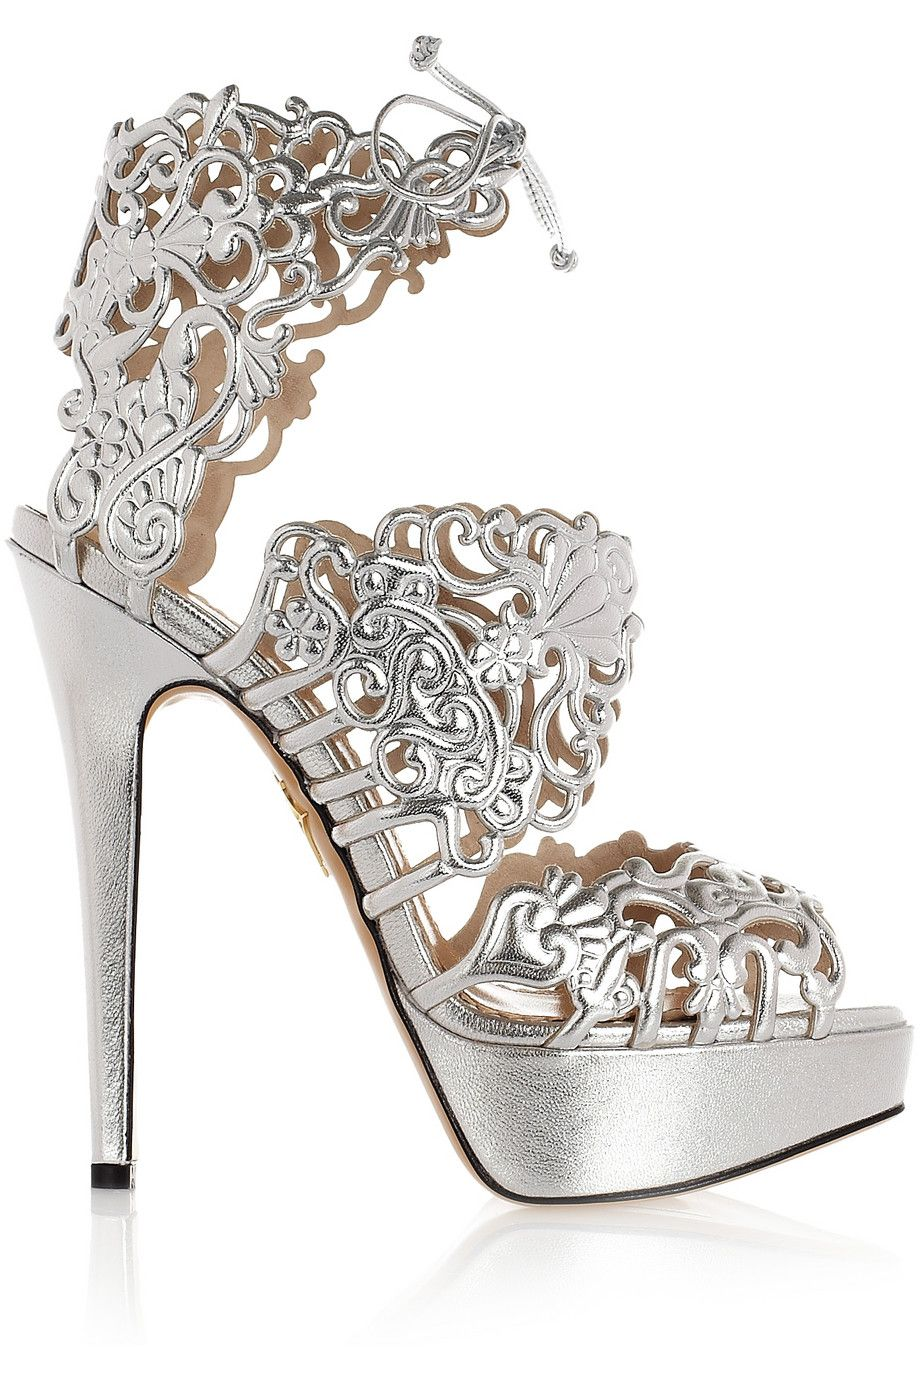 1000  images about shoes on Pinterest | Ouija, Sparkly shoes and ...